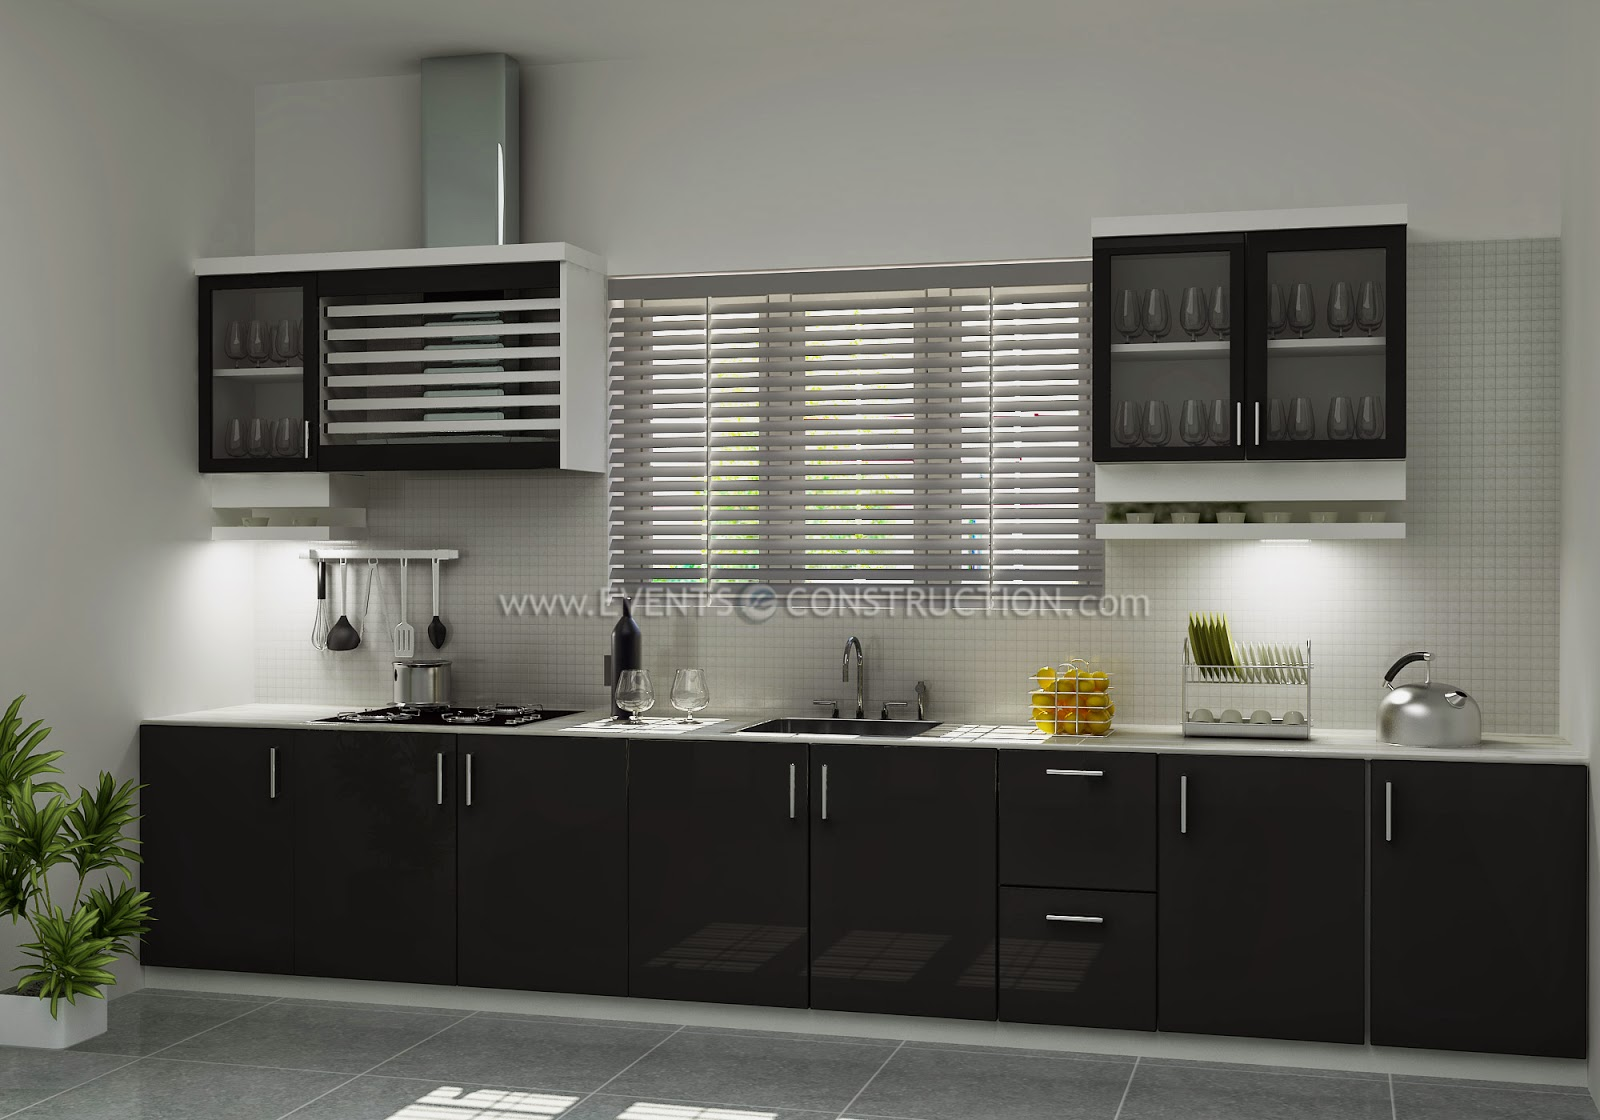 Evens construction pvt ltd simple and small kerala for Kitchen design kerala